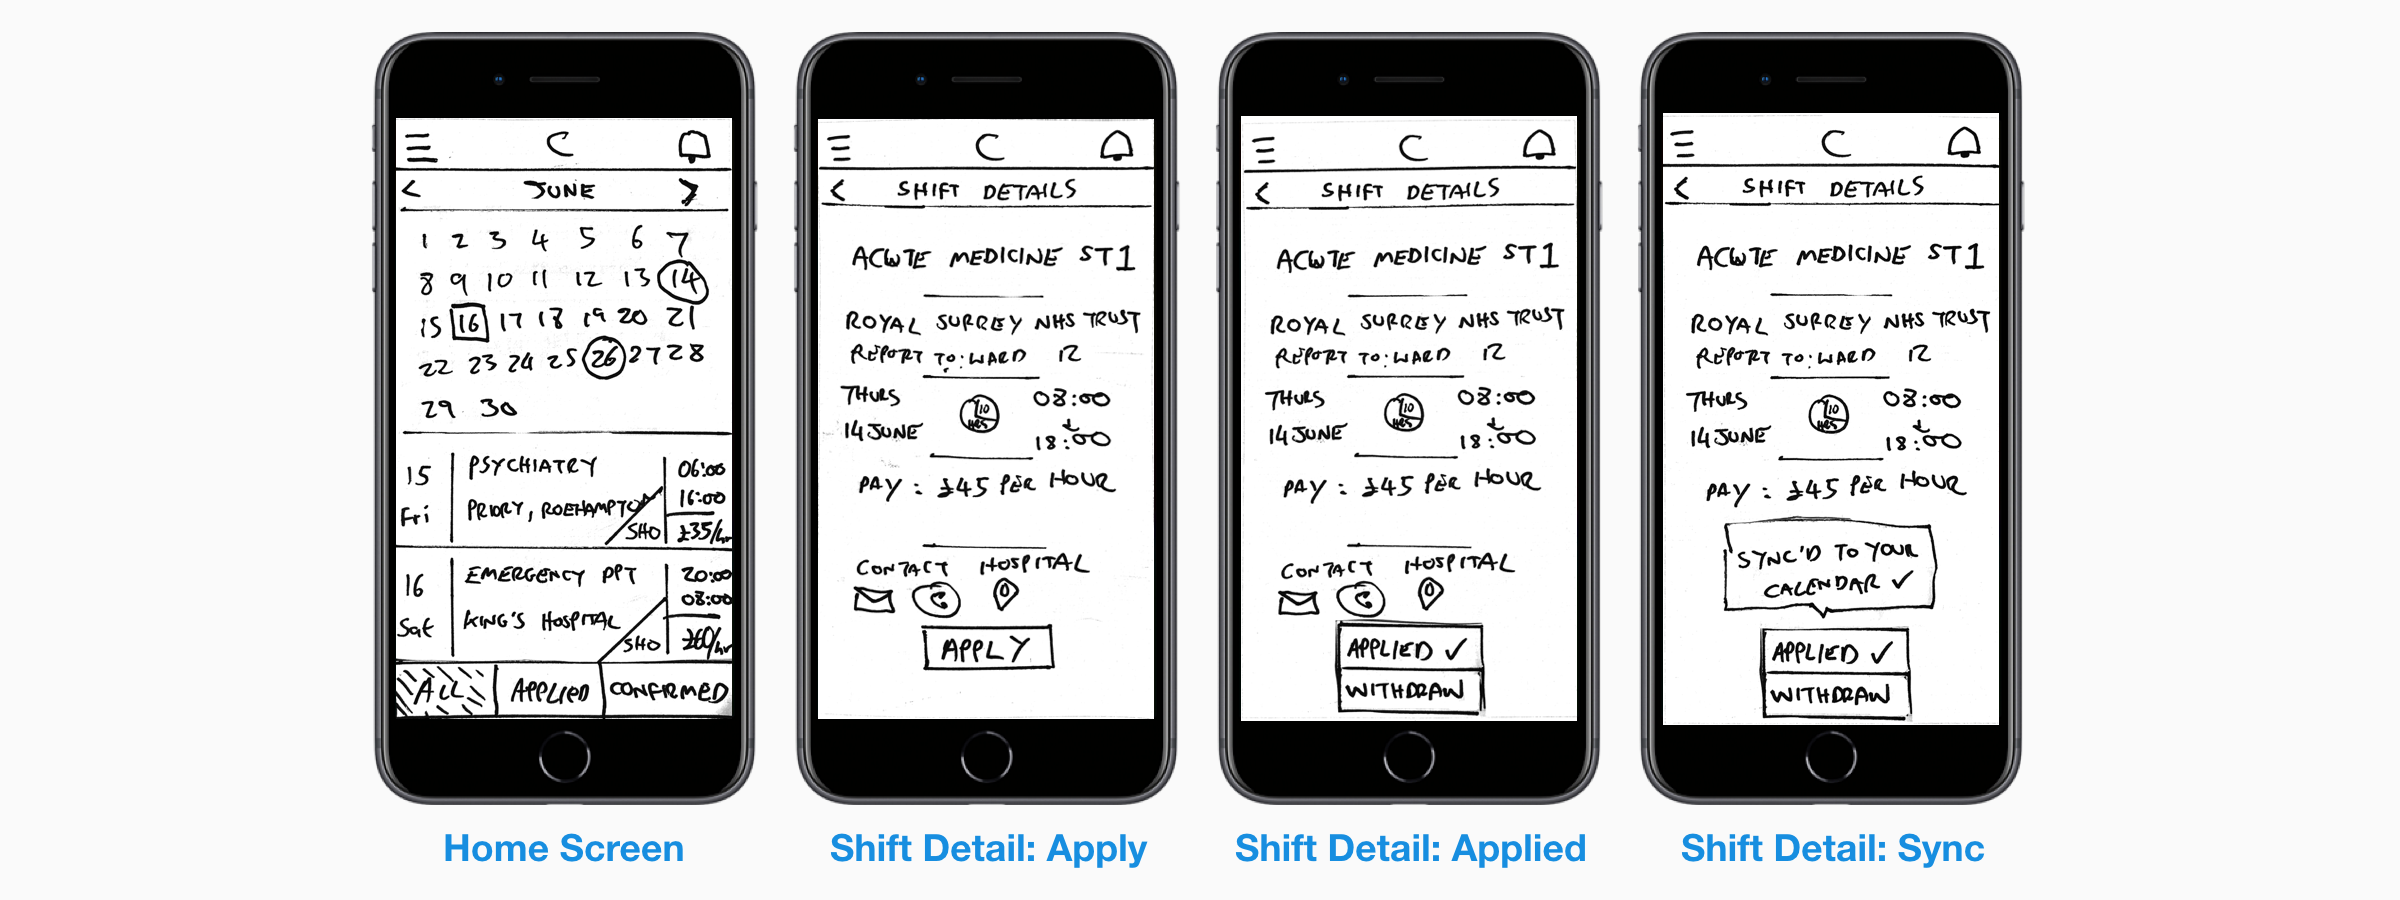 Four sketched iOS app screens that make up a paper prototype